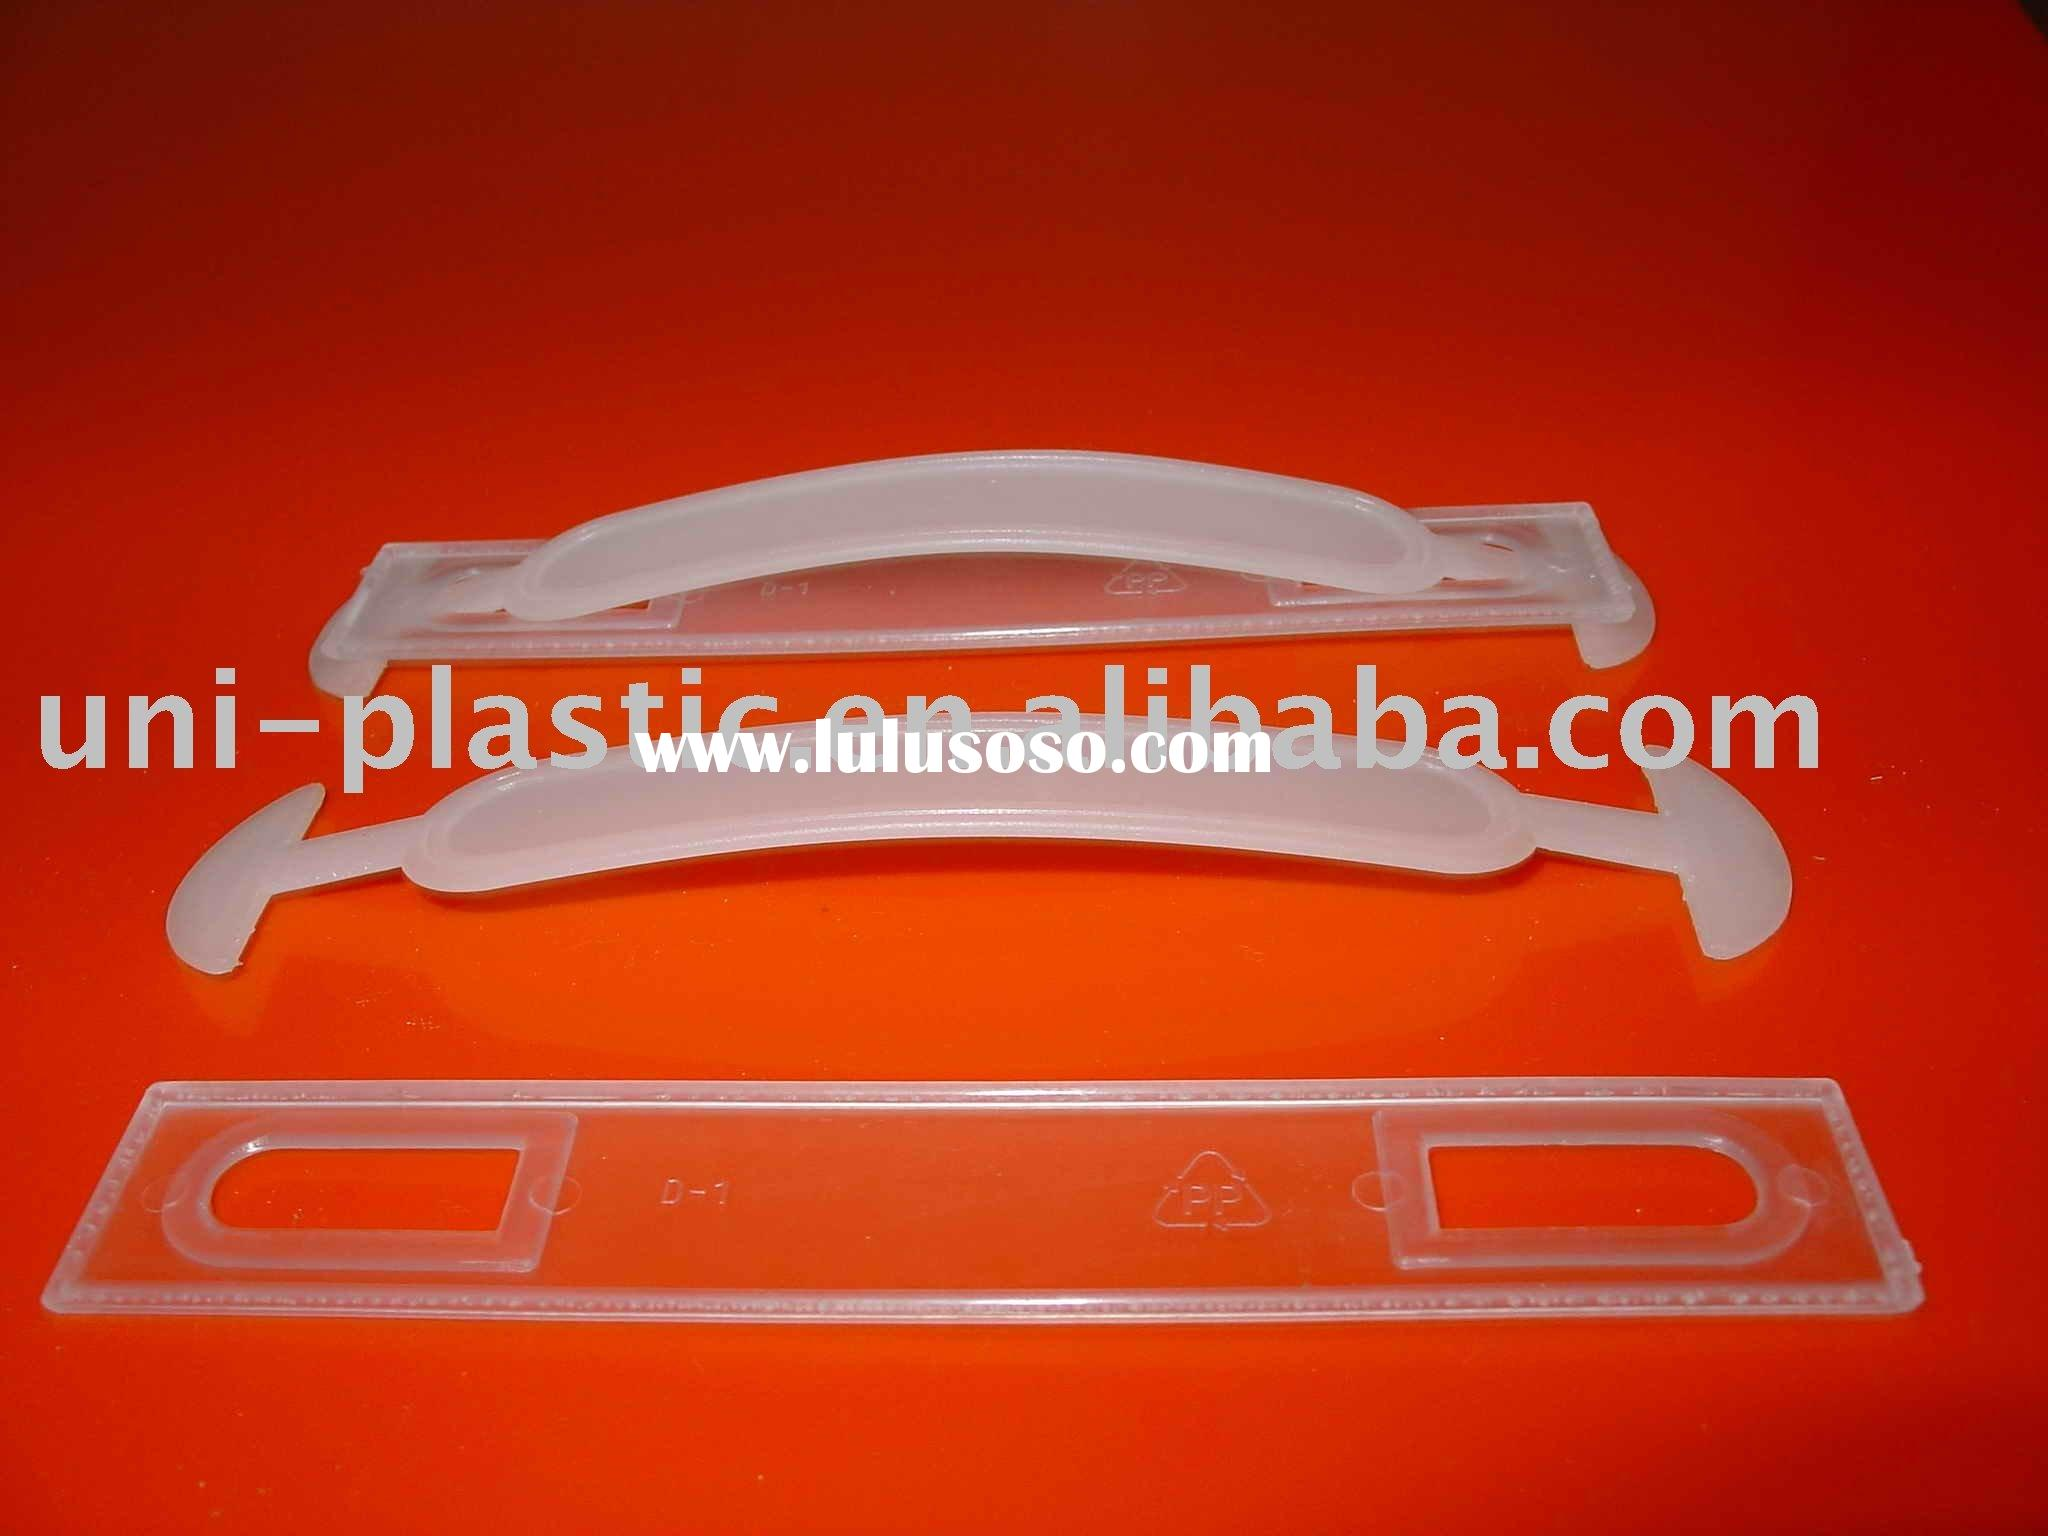 Plastic Handle,Box Handle,Carton Handle,Handles